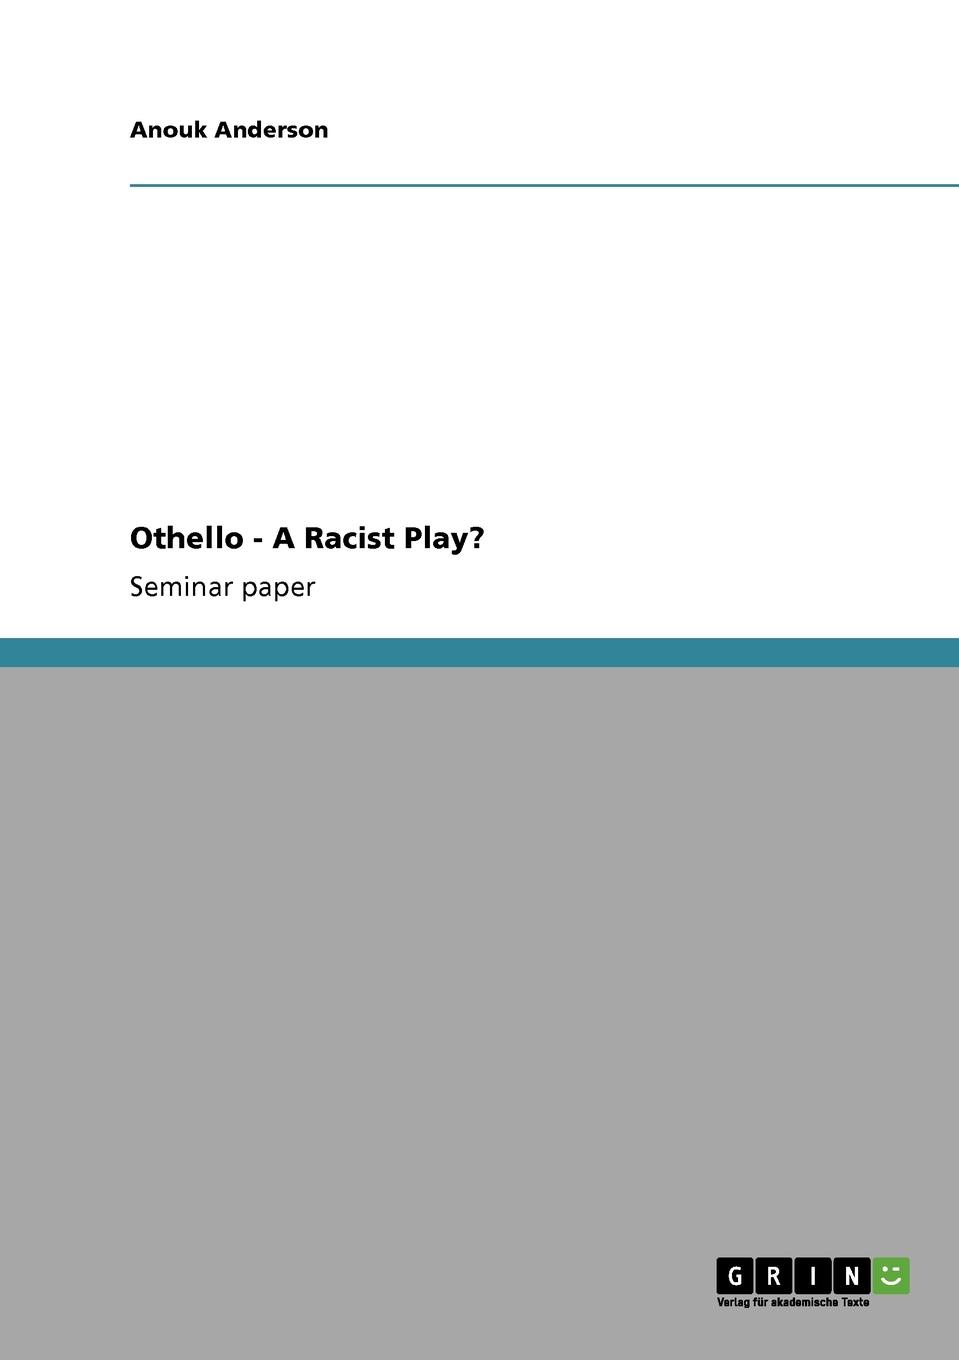 Anouk Anderson Othello - A Racist Play. place not race